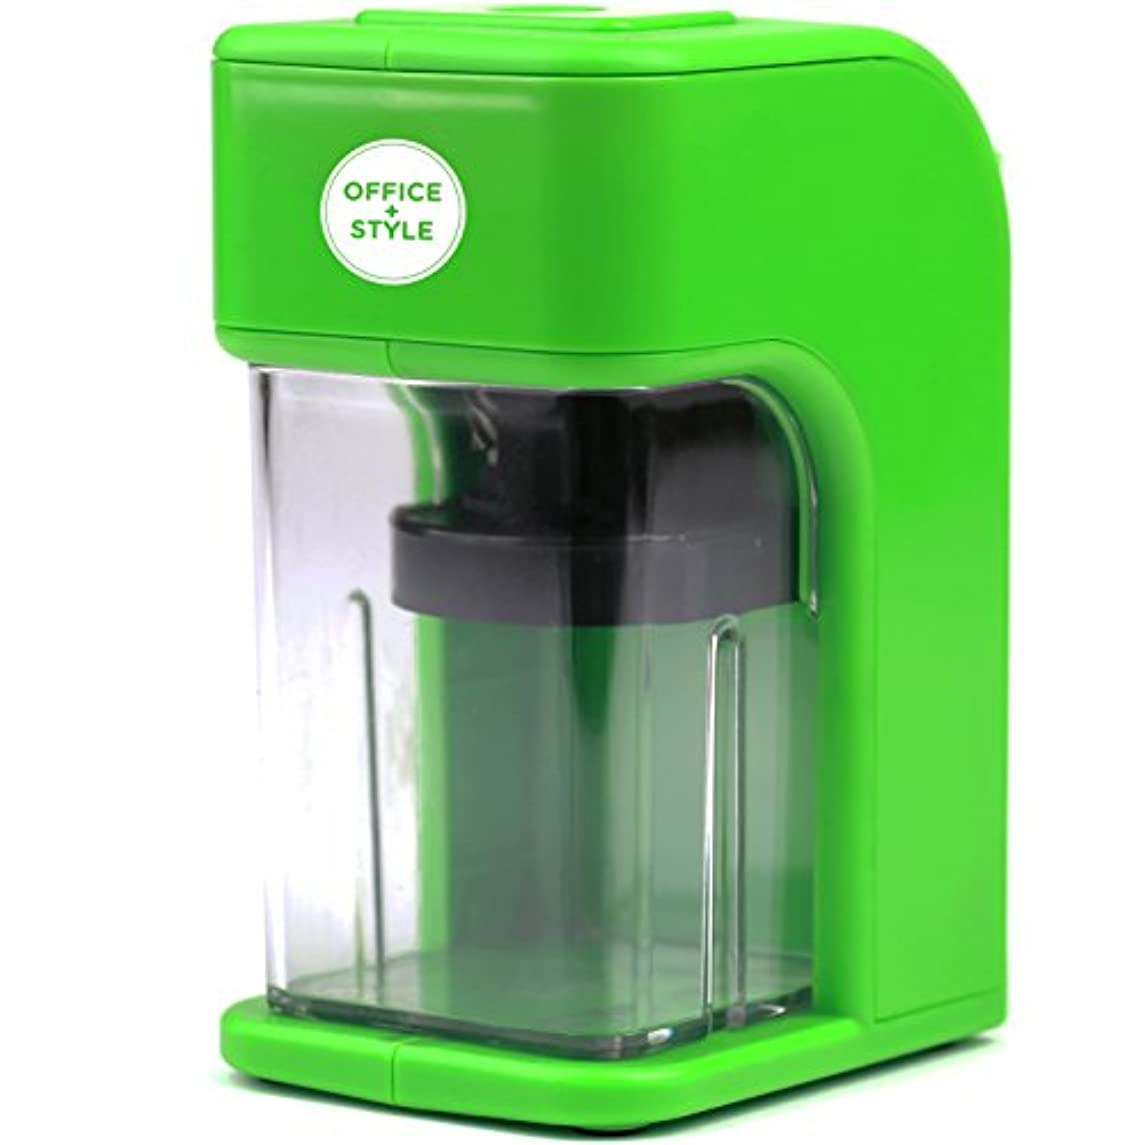 Electronic Pencil Sharpener With Auto Stop Safety Feature & Large Pencil Holder For Home, Office or Classroom - Green - By Office + Style